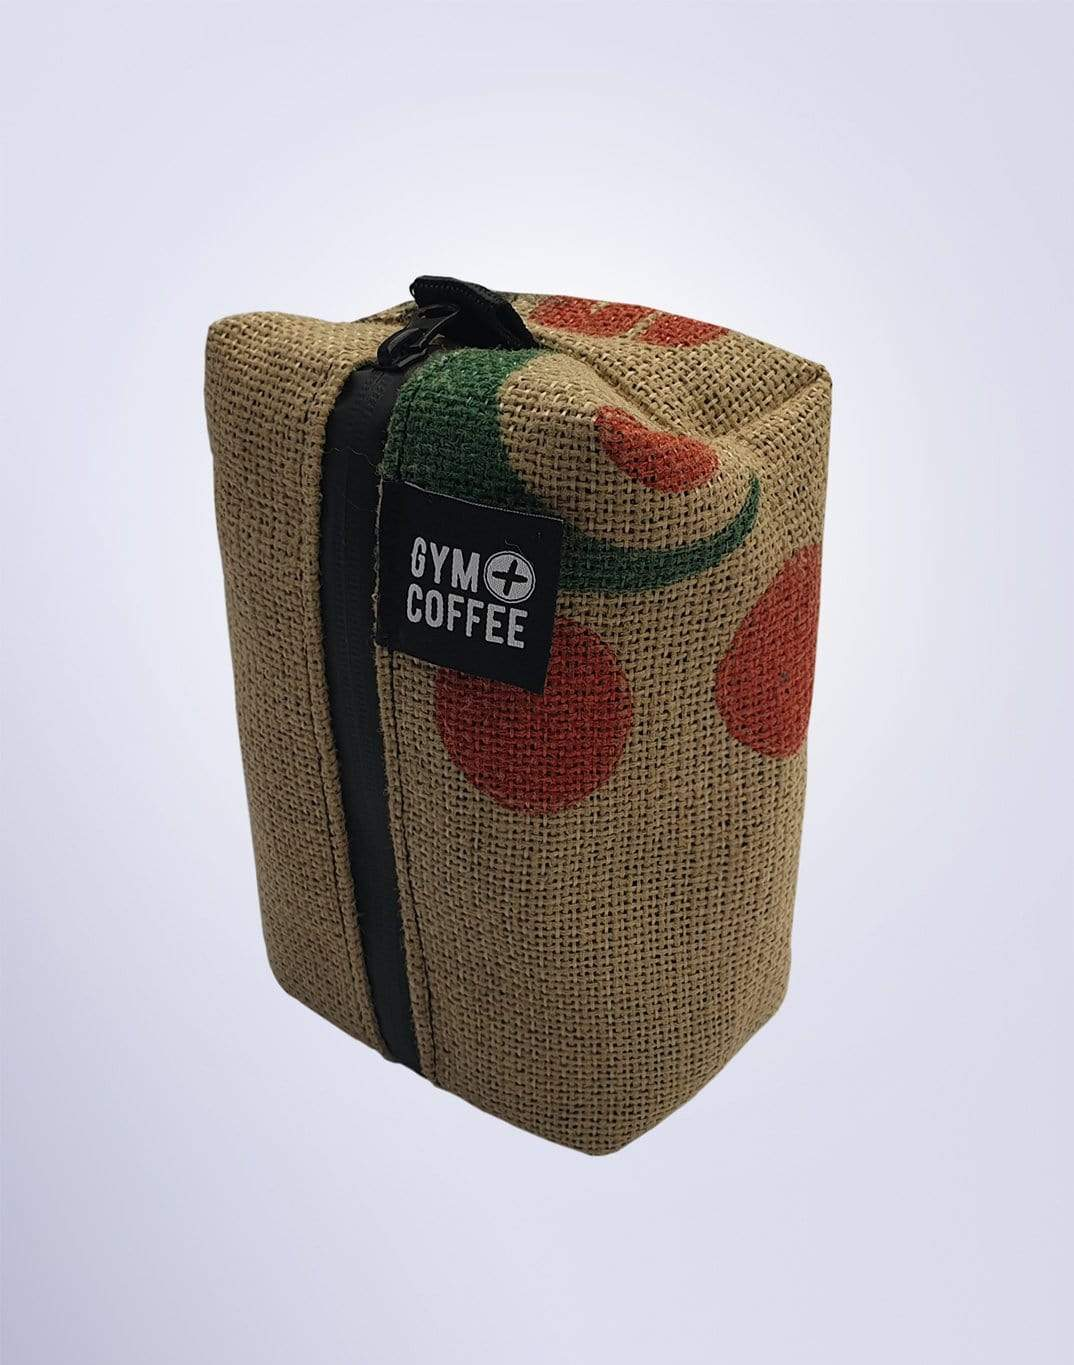 Gym Plus Coffee Bag The Washbag Designed in Ireland